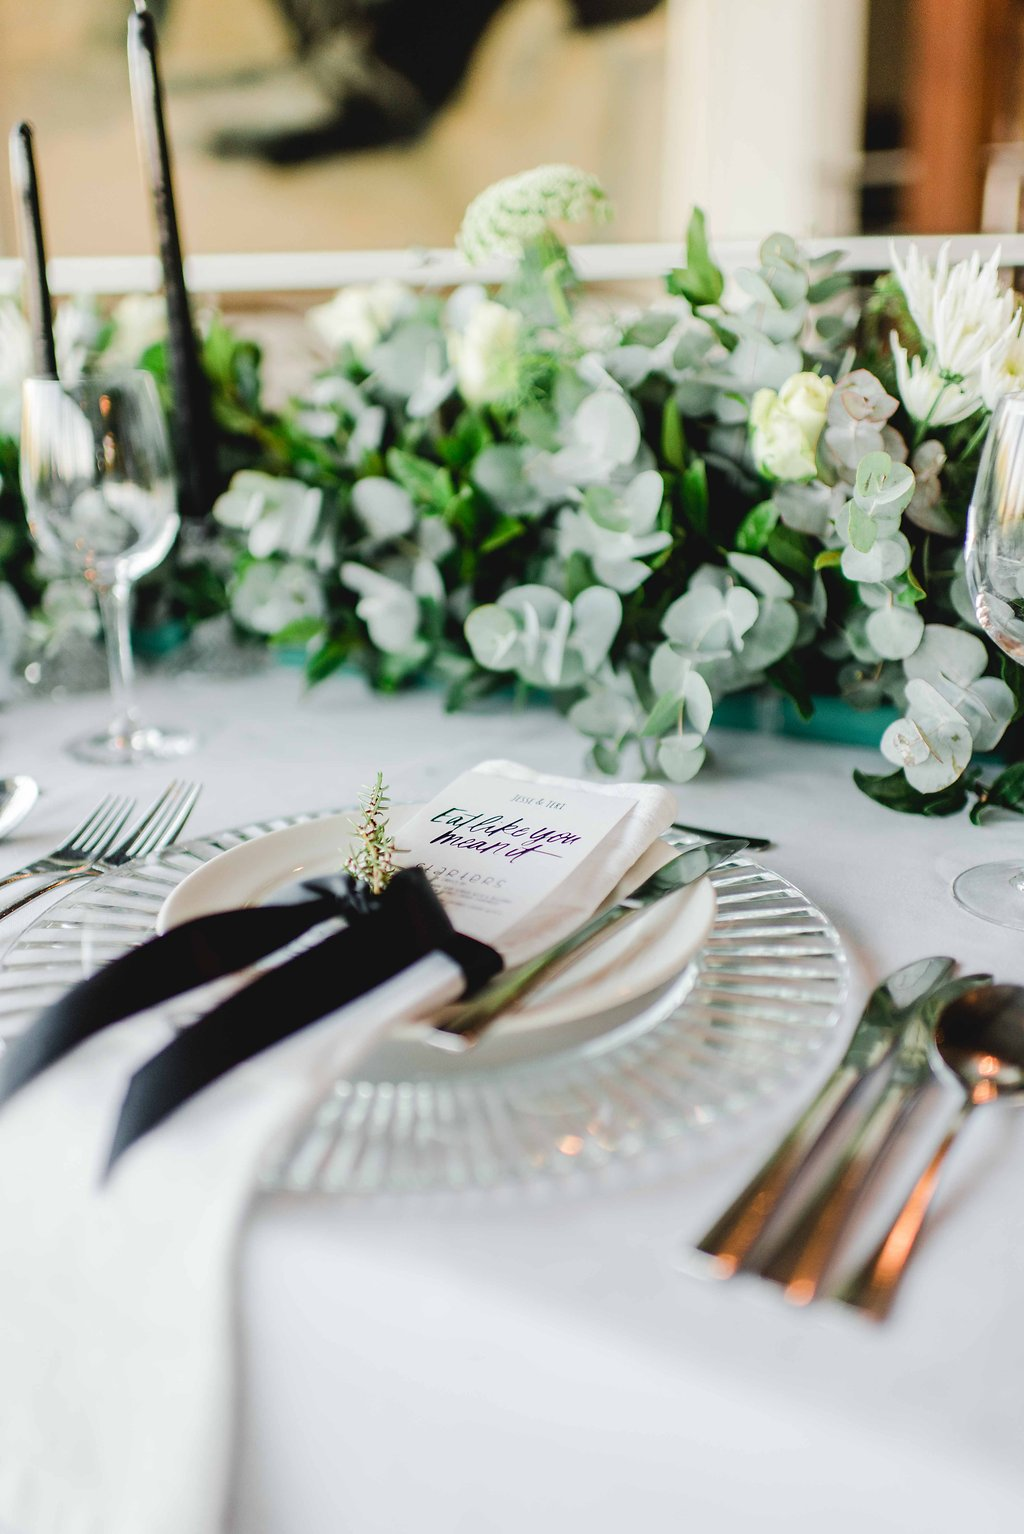 Graceful Greenery Wedding Place Setting | Image: Carla Adel